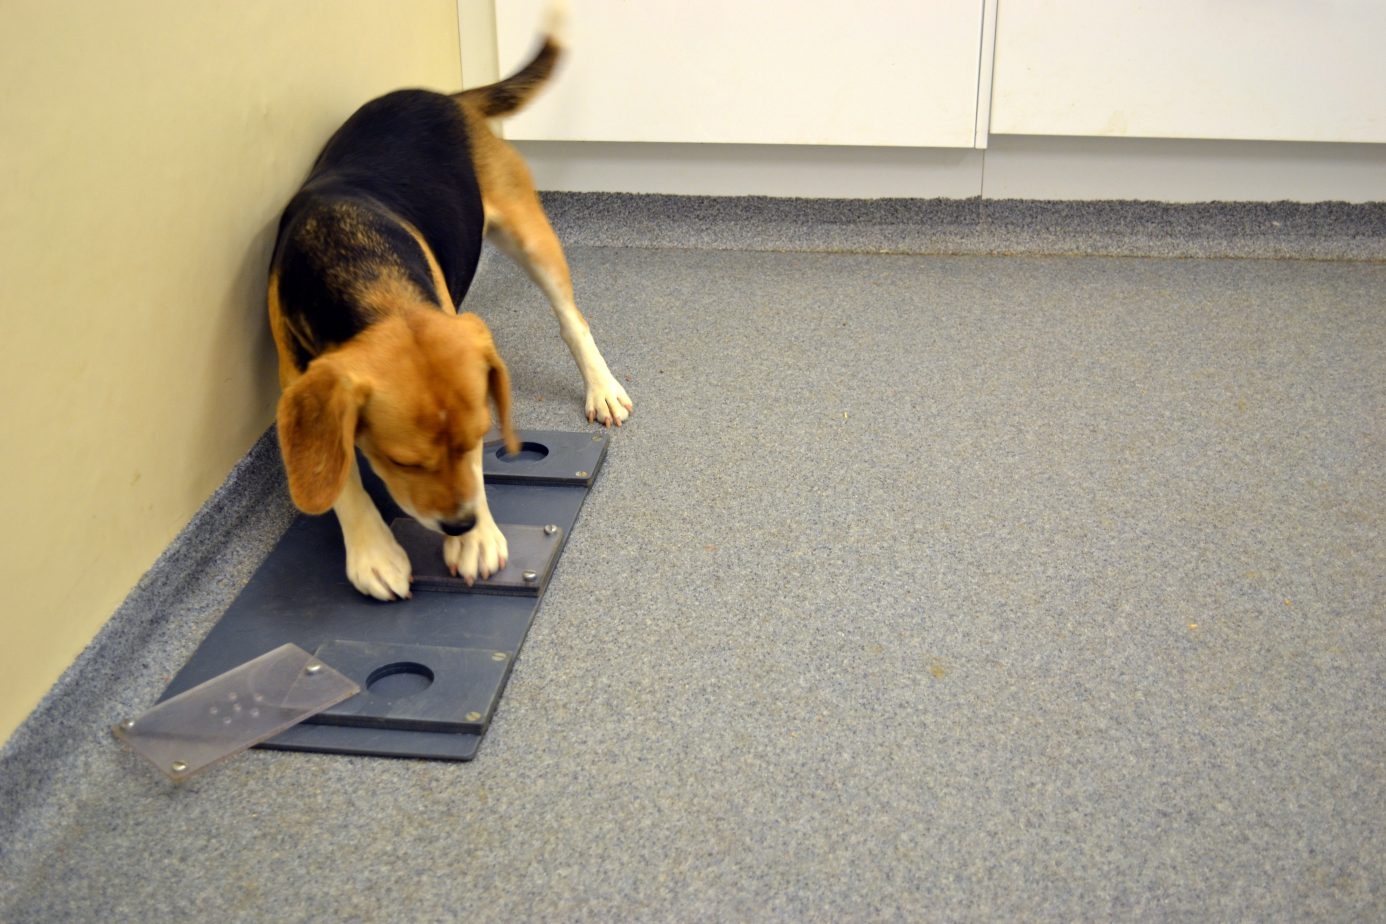 Beagle attempting to solve an unsolvable task Credit: Mia Persson